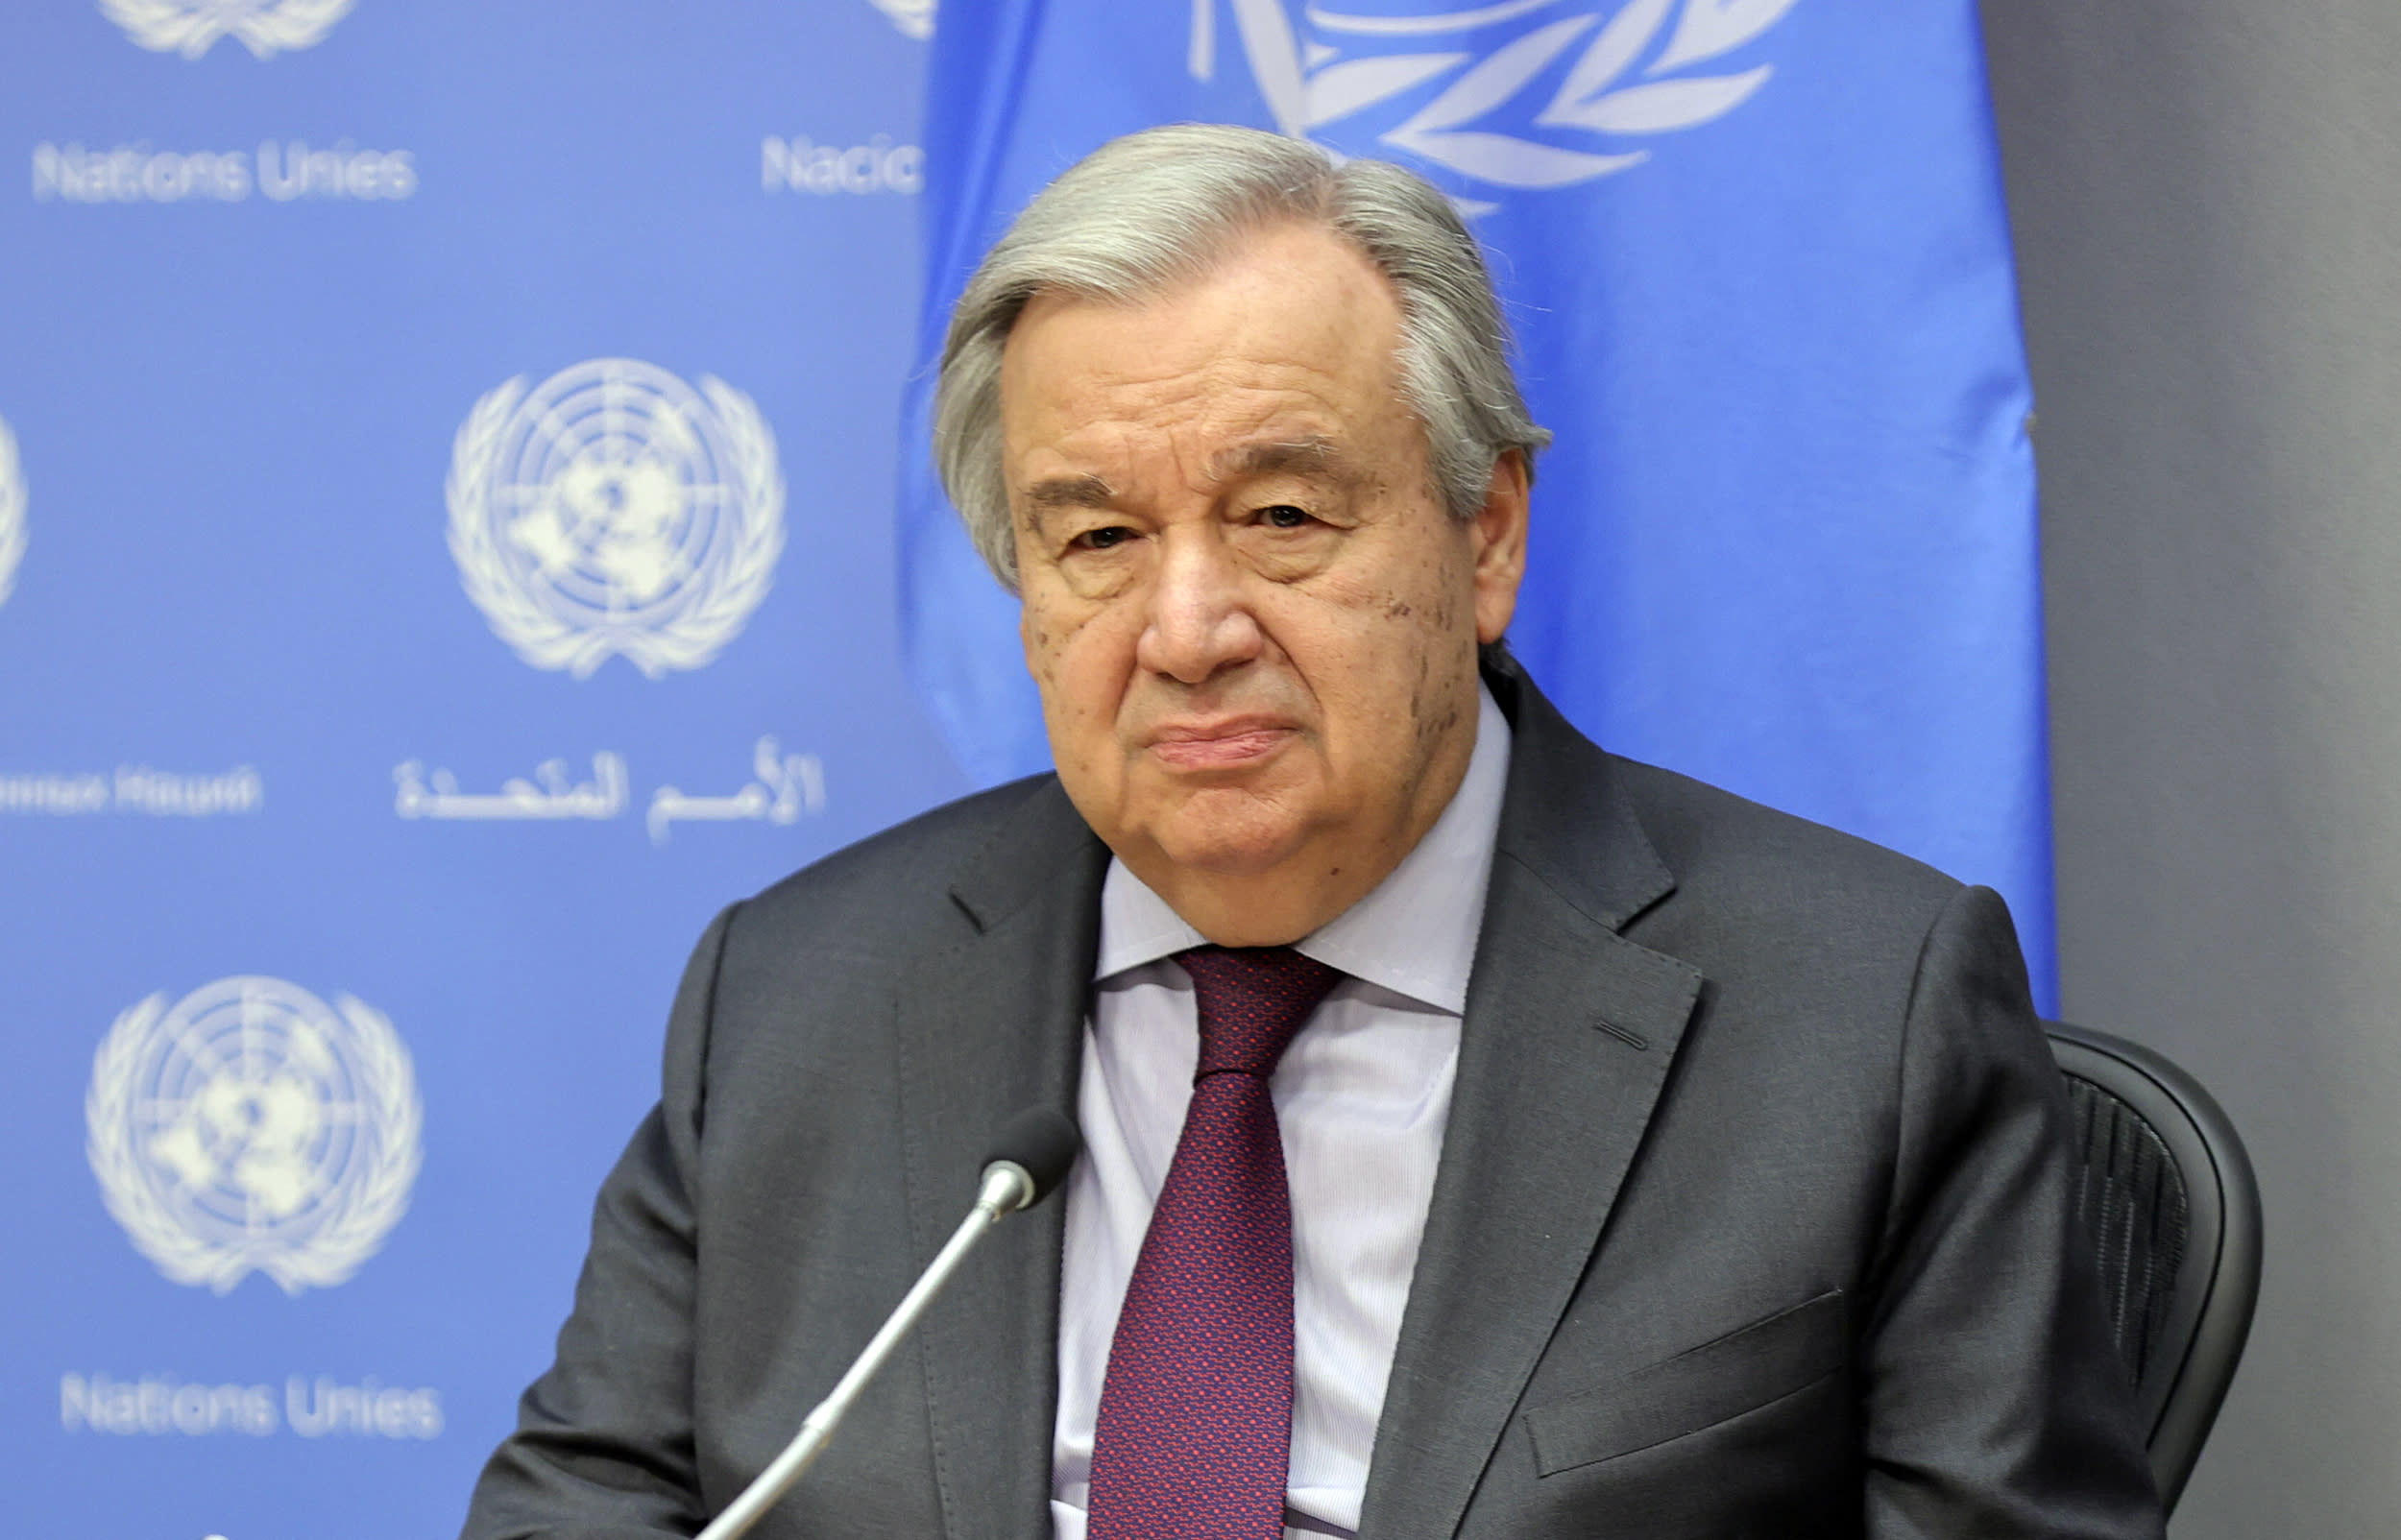 'We are at the breaking point', U.N. chief says in call to end inequalities